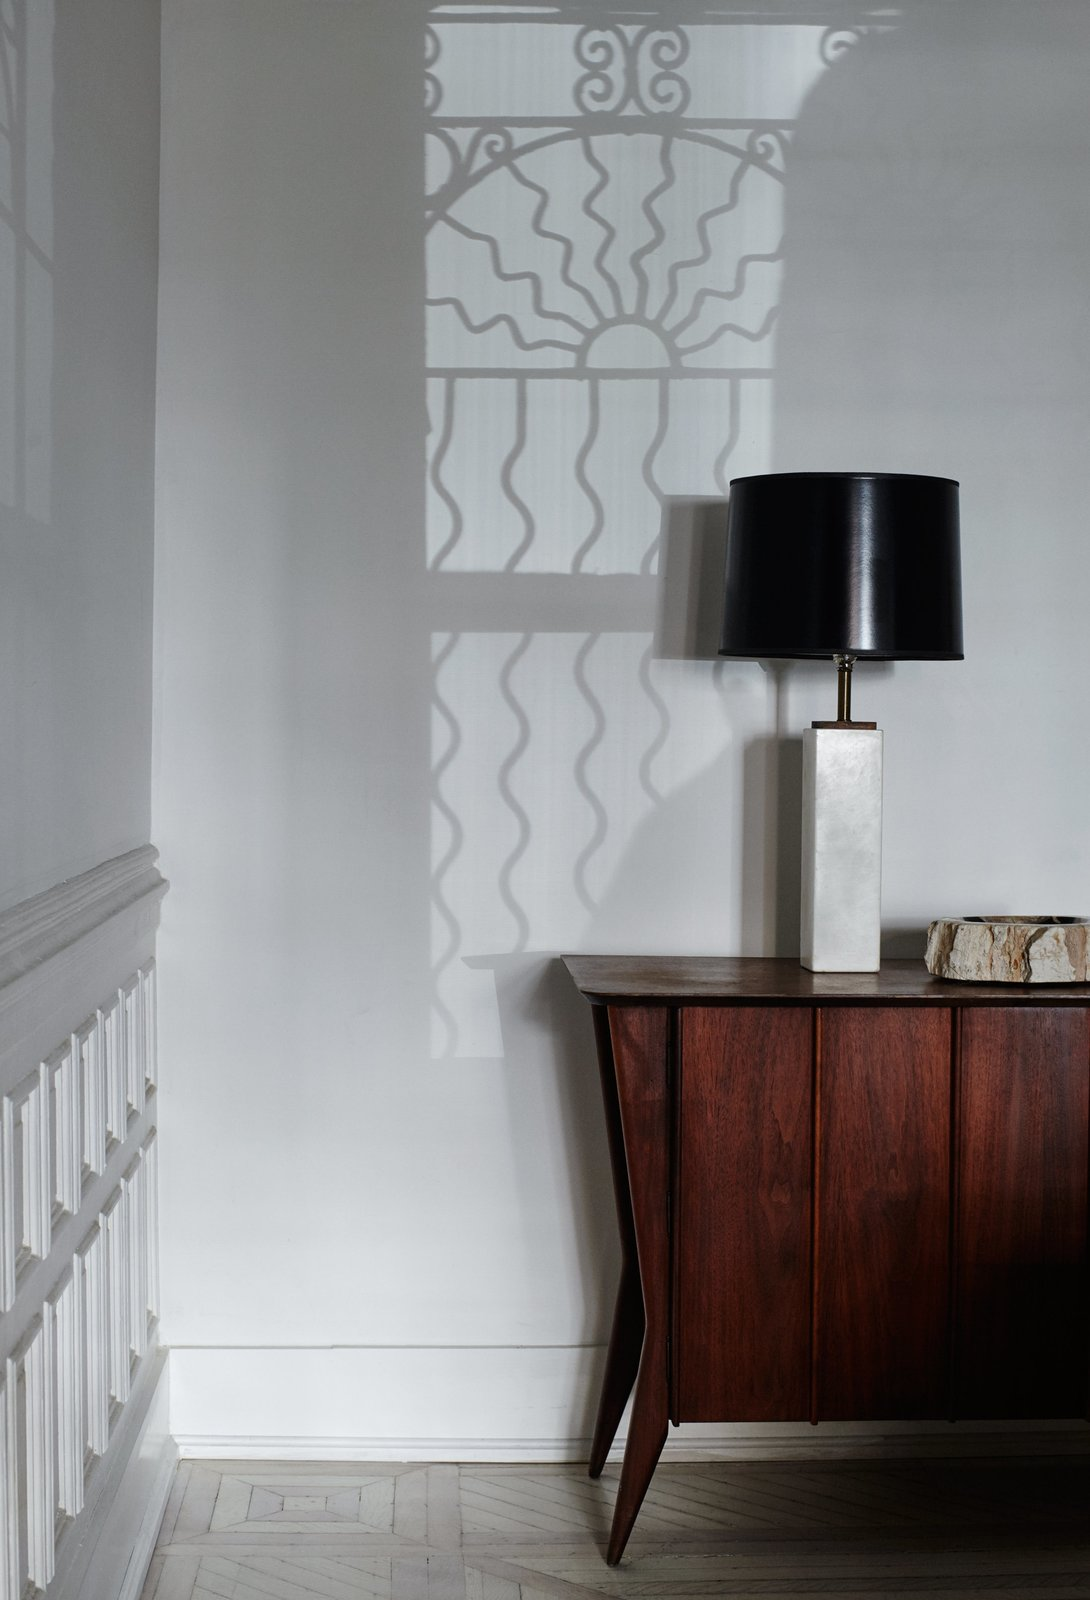 Madelena-Gnewikow Residence with wainscoting along accent wall.